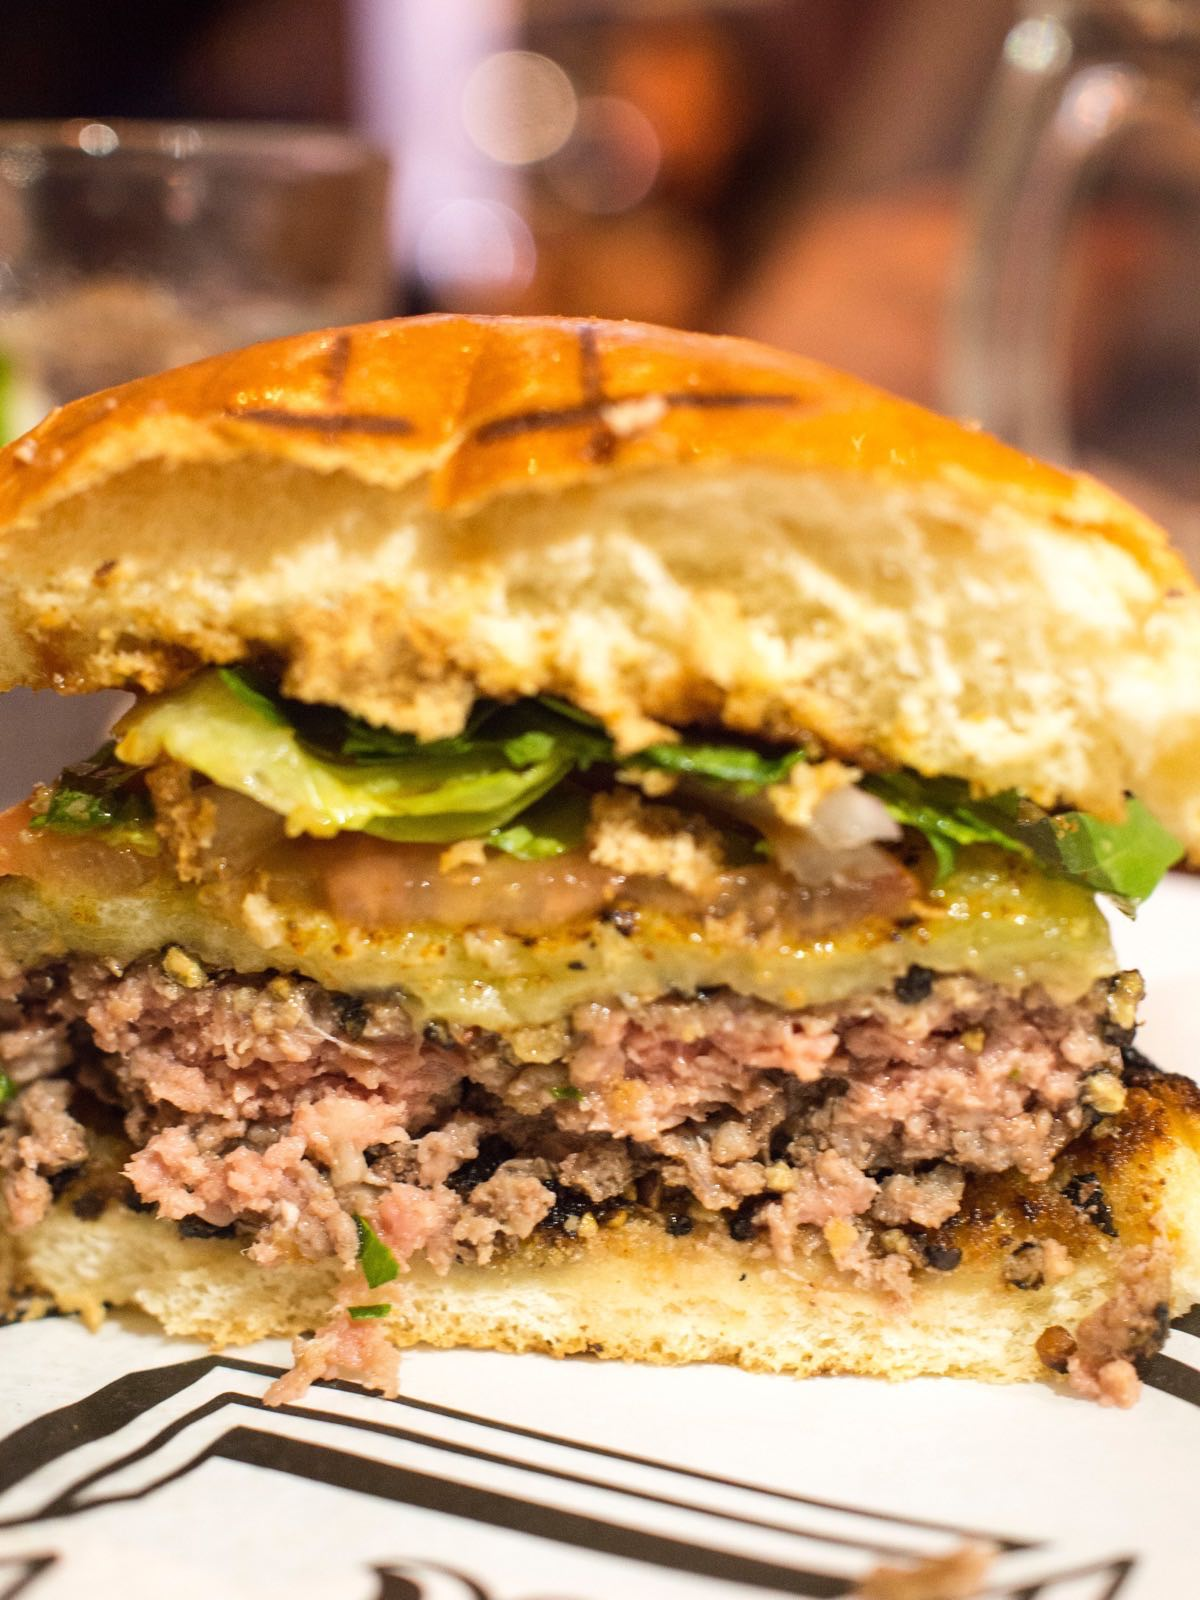 Cross Section of the Black Pepper Burger @ Beef & Liberty Shanghai